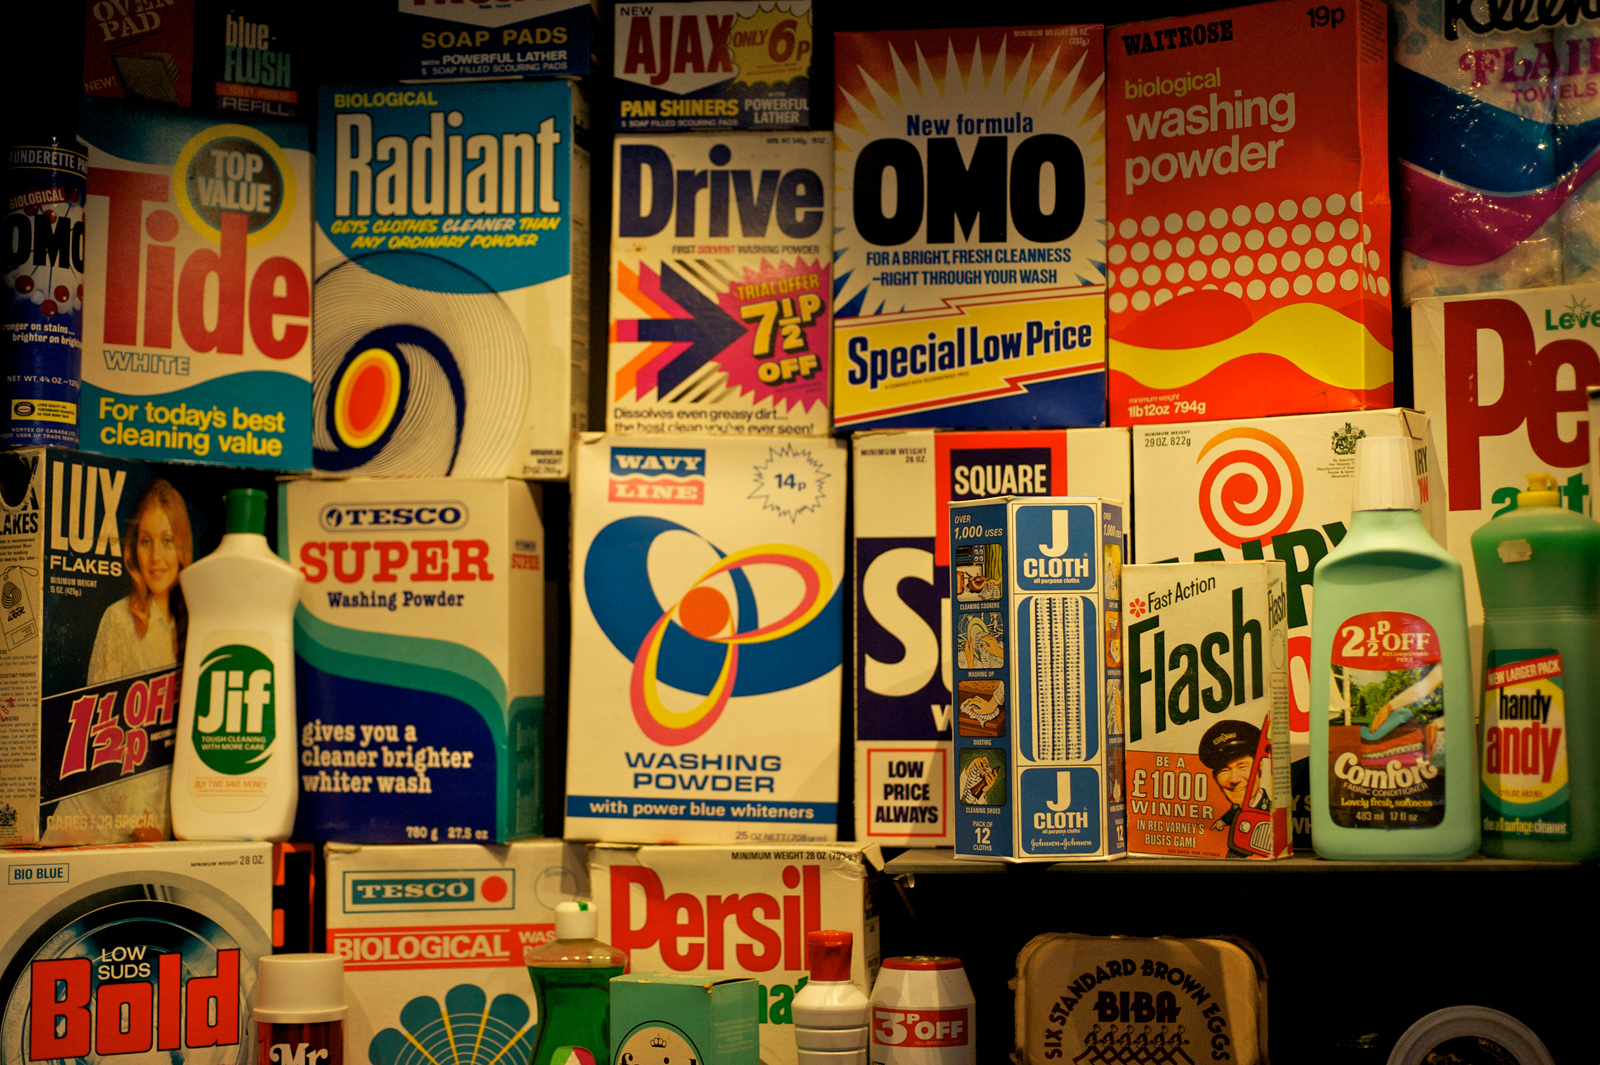 Museum of Brands, Packaging and Advertising London, PACKAGING NOSTALGIA AT THE MUSEUM OF BRANDS - Landa Nanography